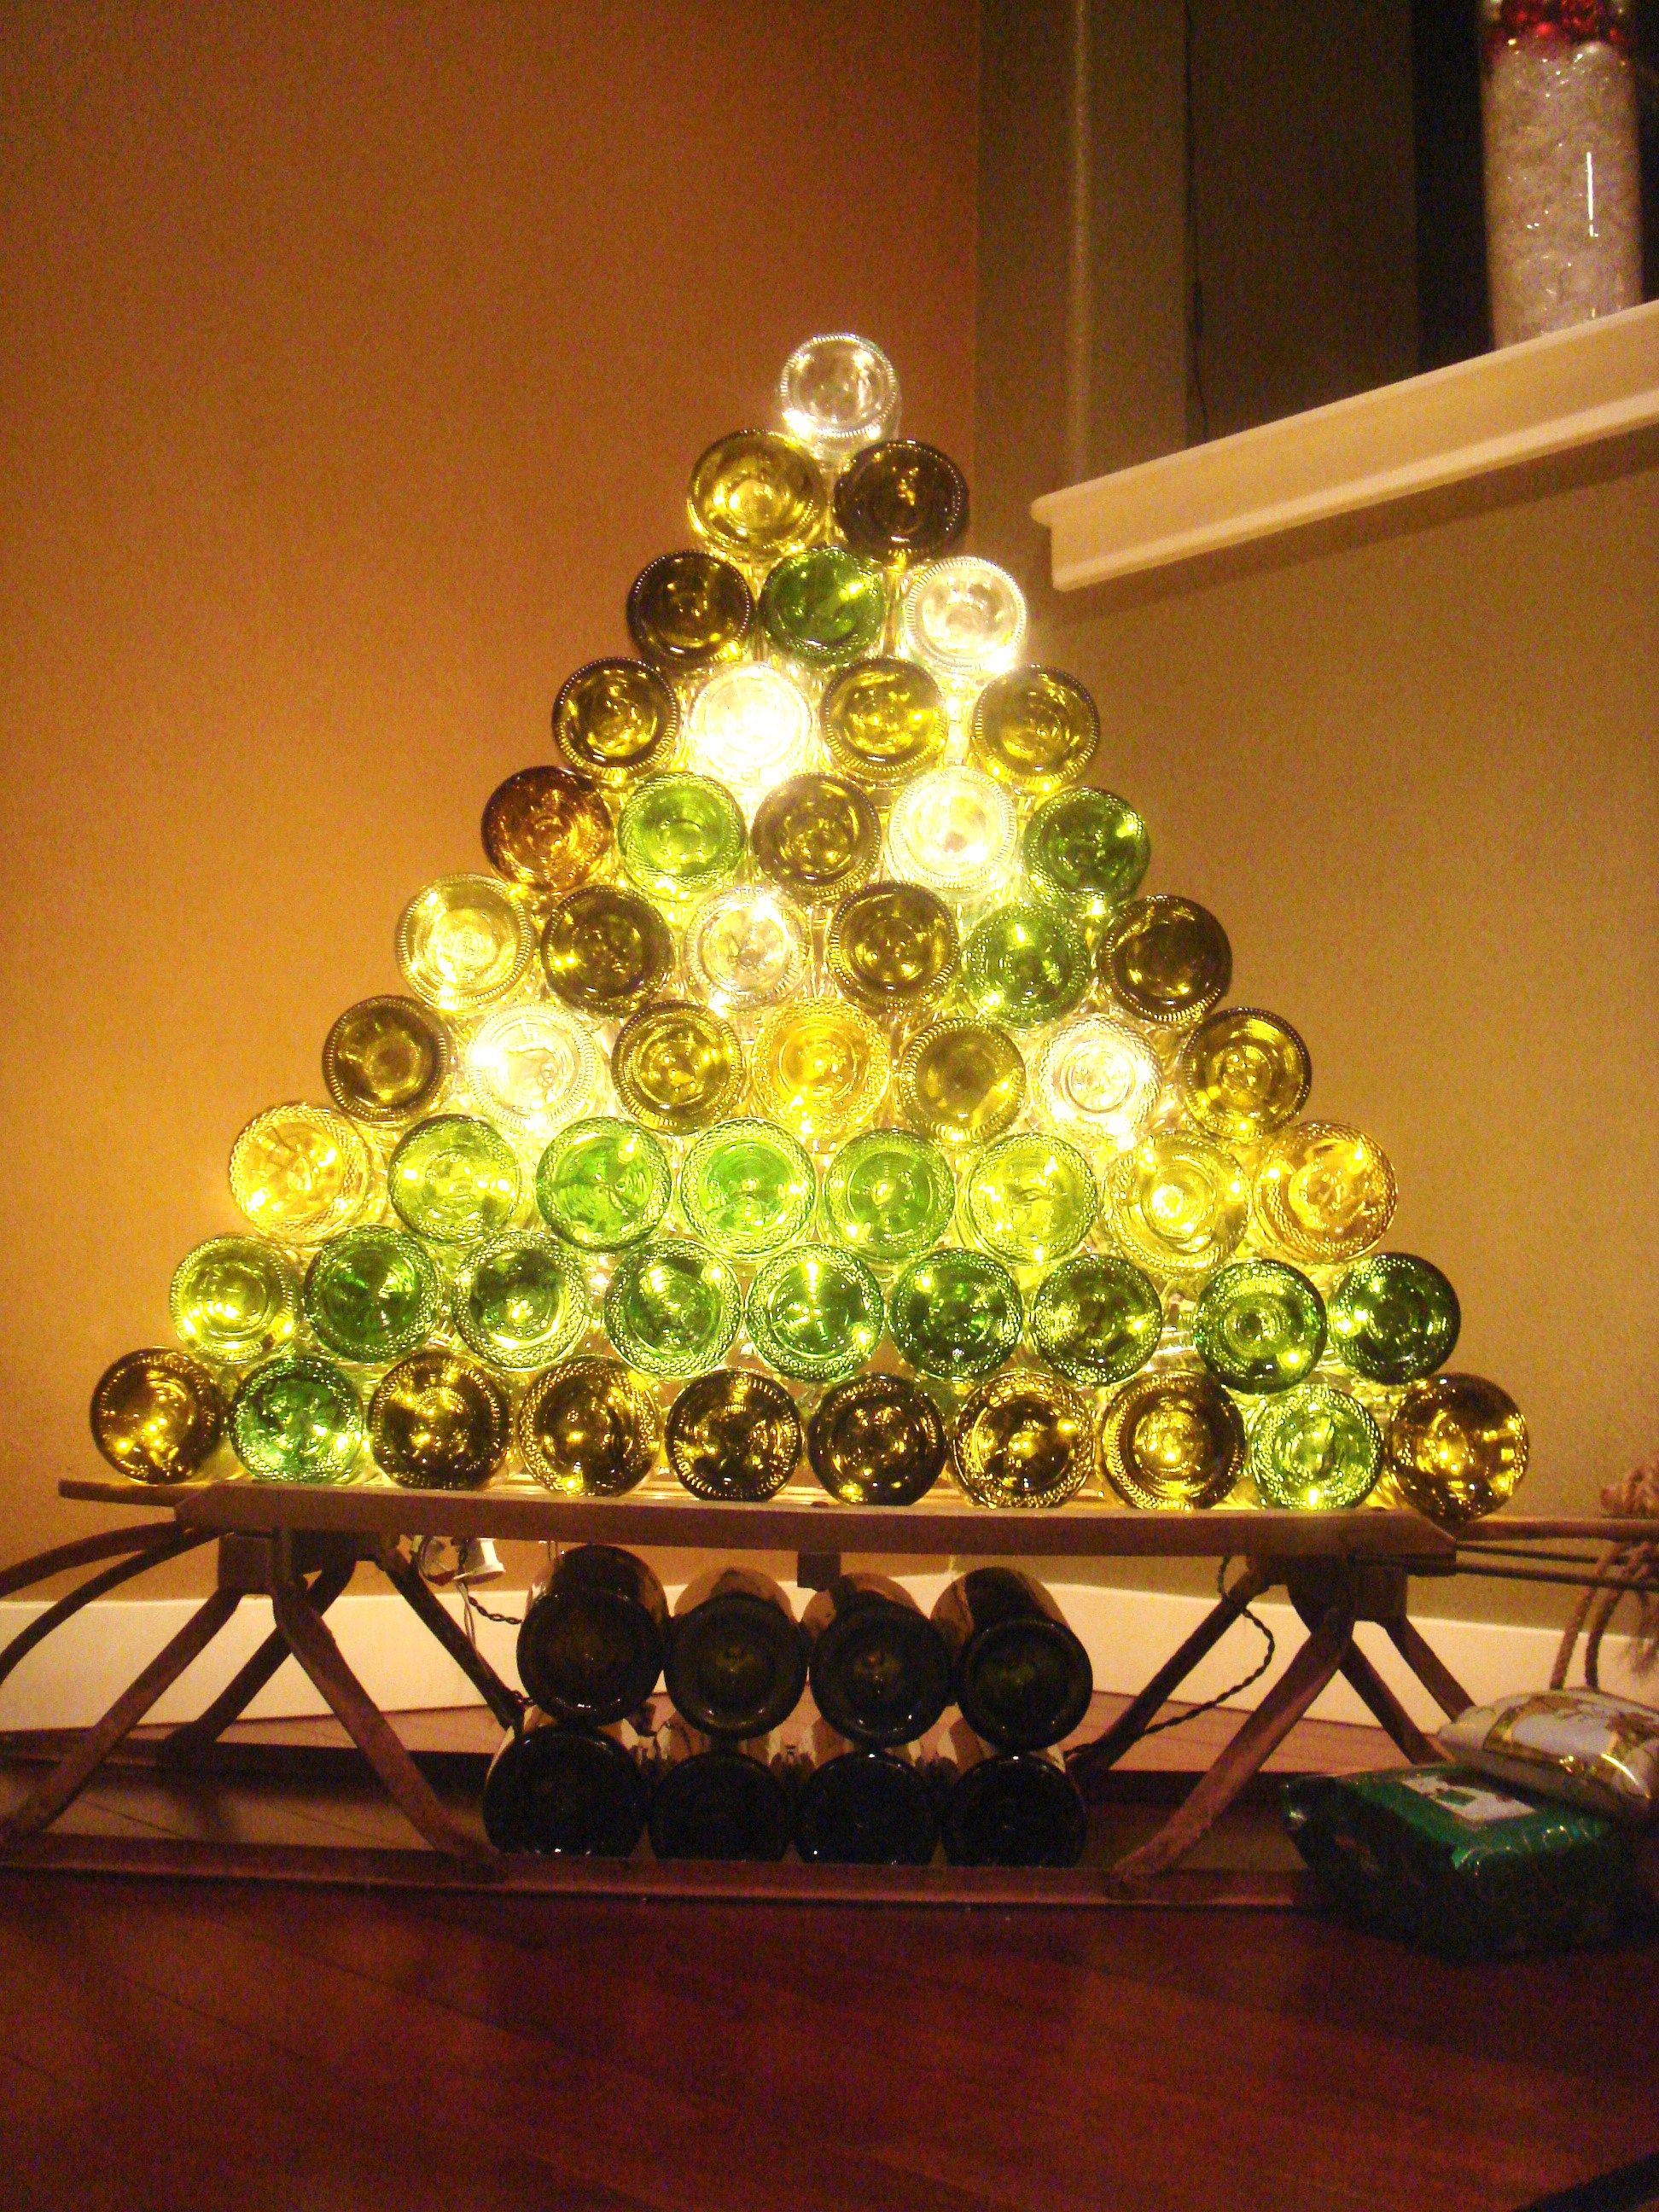 I'm sure you've seen those festive holiday wine bottle ... |2946 Beer Bottle Christmas Tree